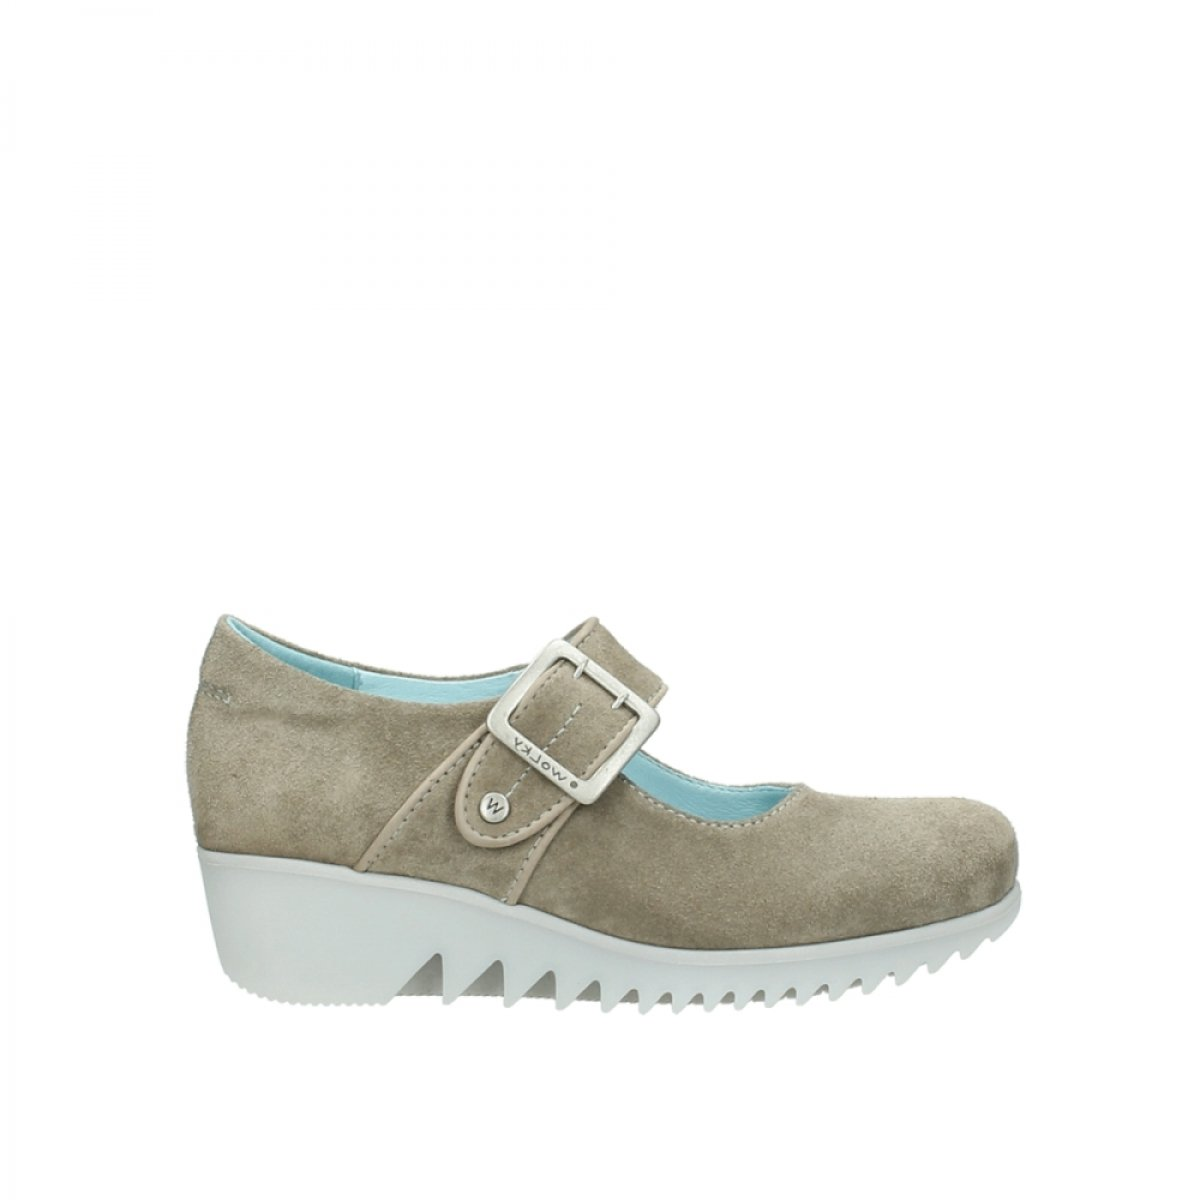 Wolky Comfort Mary Janes Silky B01DZJC9BA 43 M EU|40250 Sand Suede